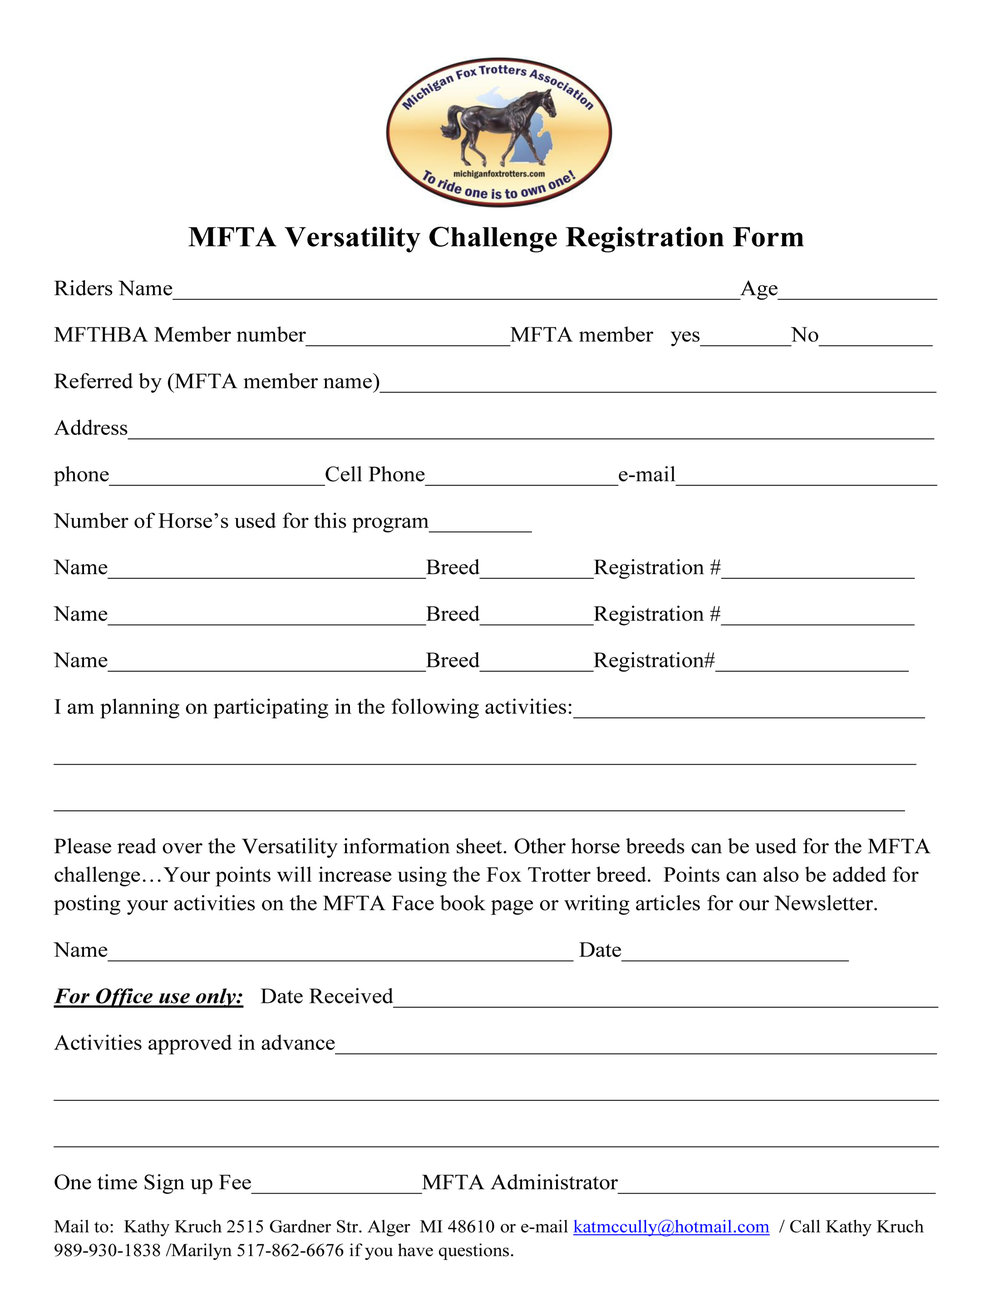 MFTA_Versatility Registration Form.jpg